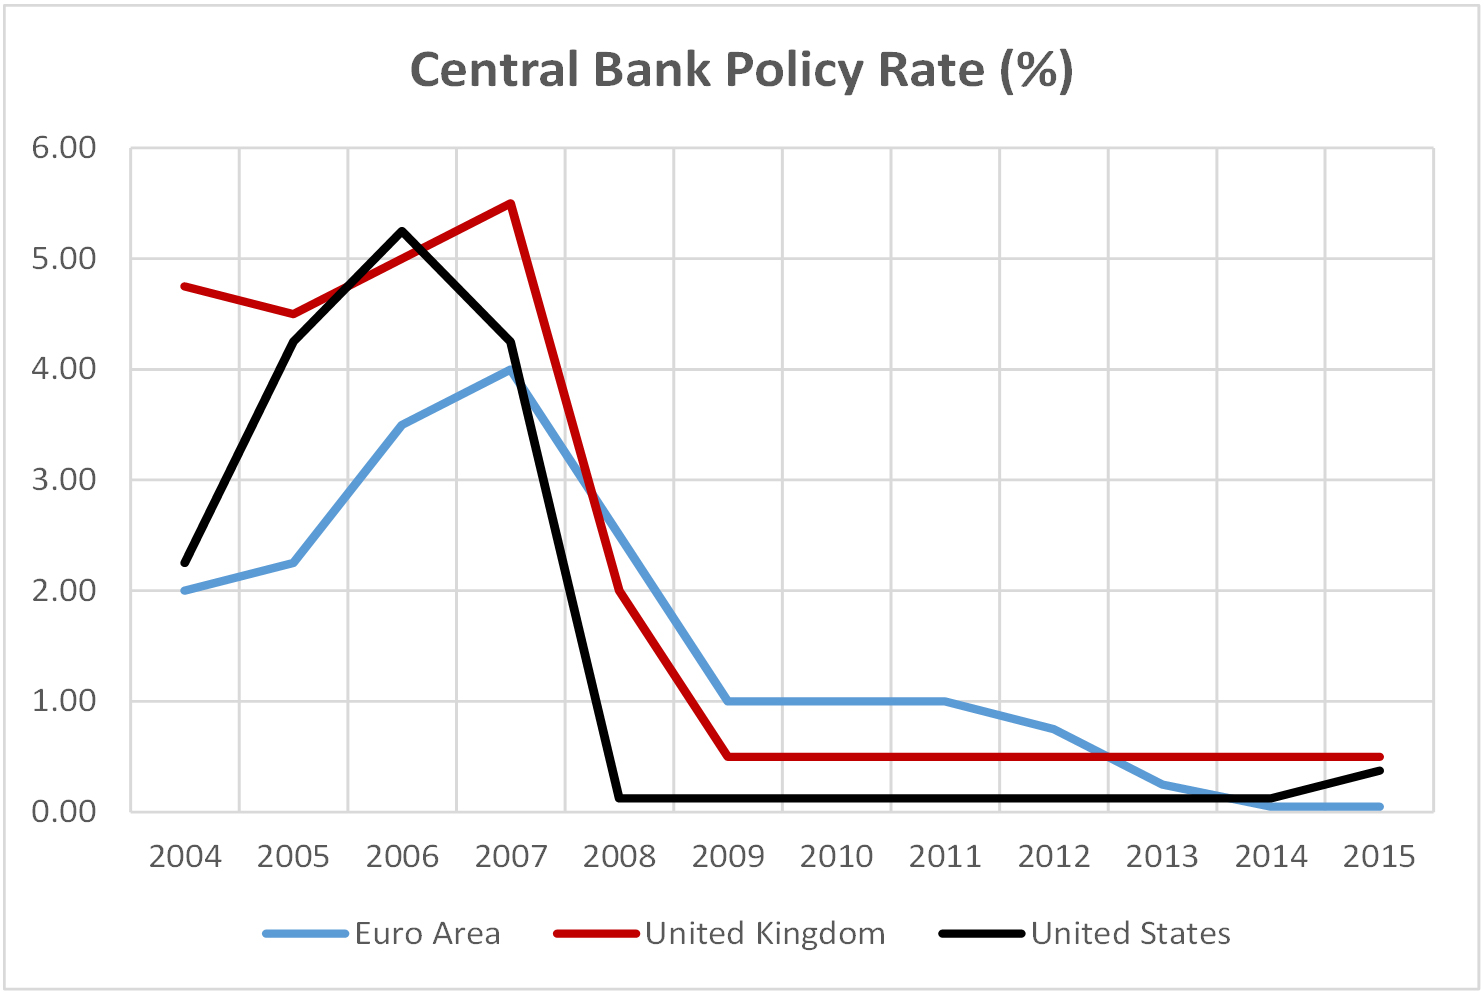 Chart 1.12 - Central Bank Policy Rate